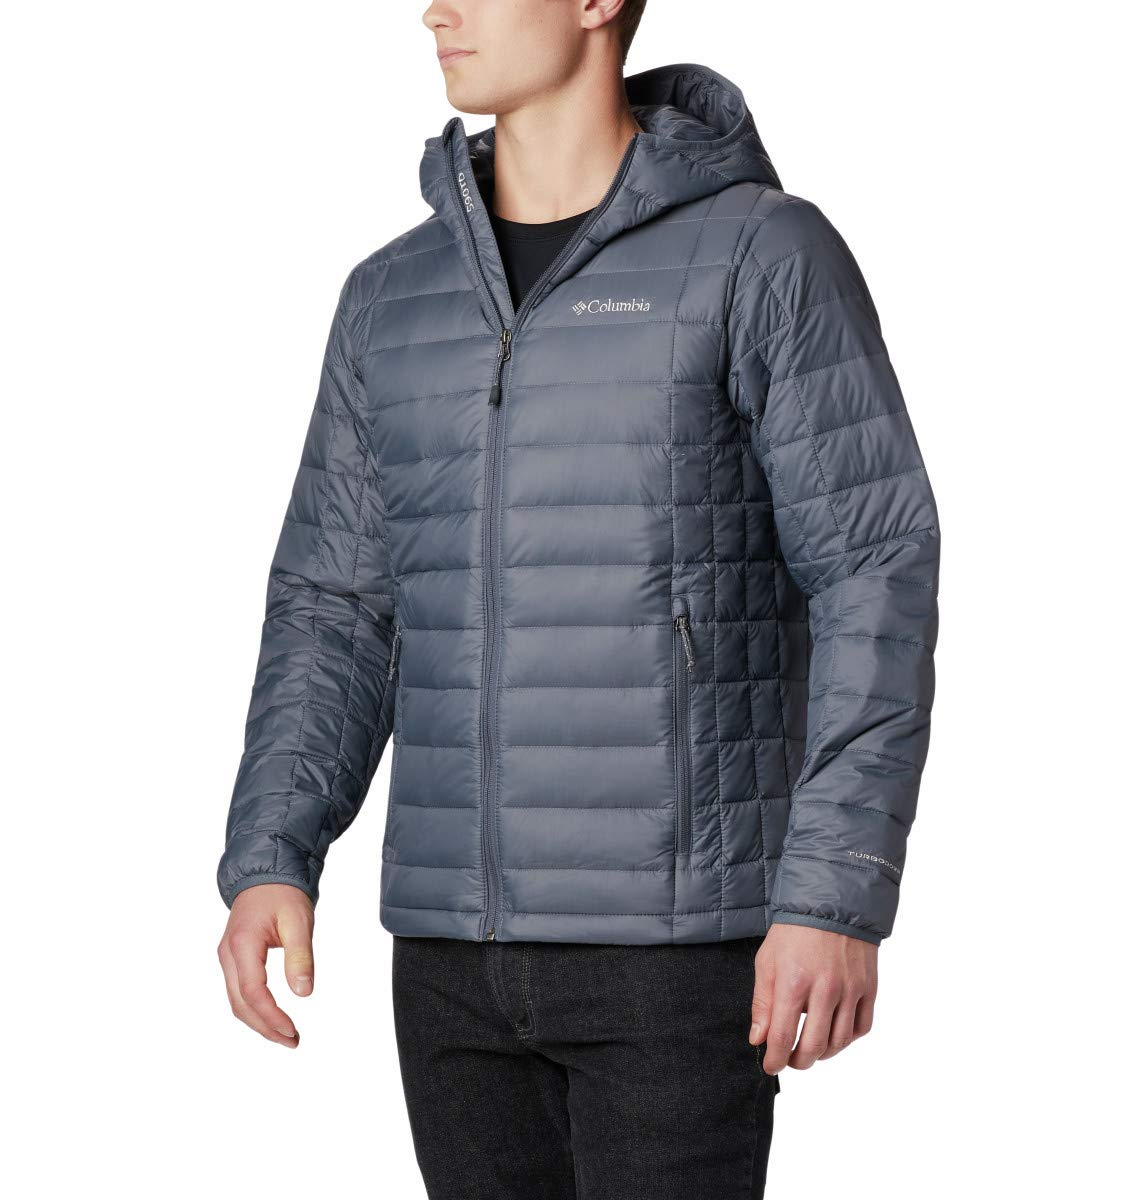 Columbia Men's Voodoo Falls 590 TurboDown Big-Tall Jacket, Thermal Warmth, 6X, Graphite by Columbia